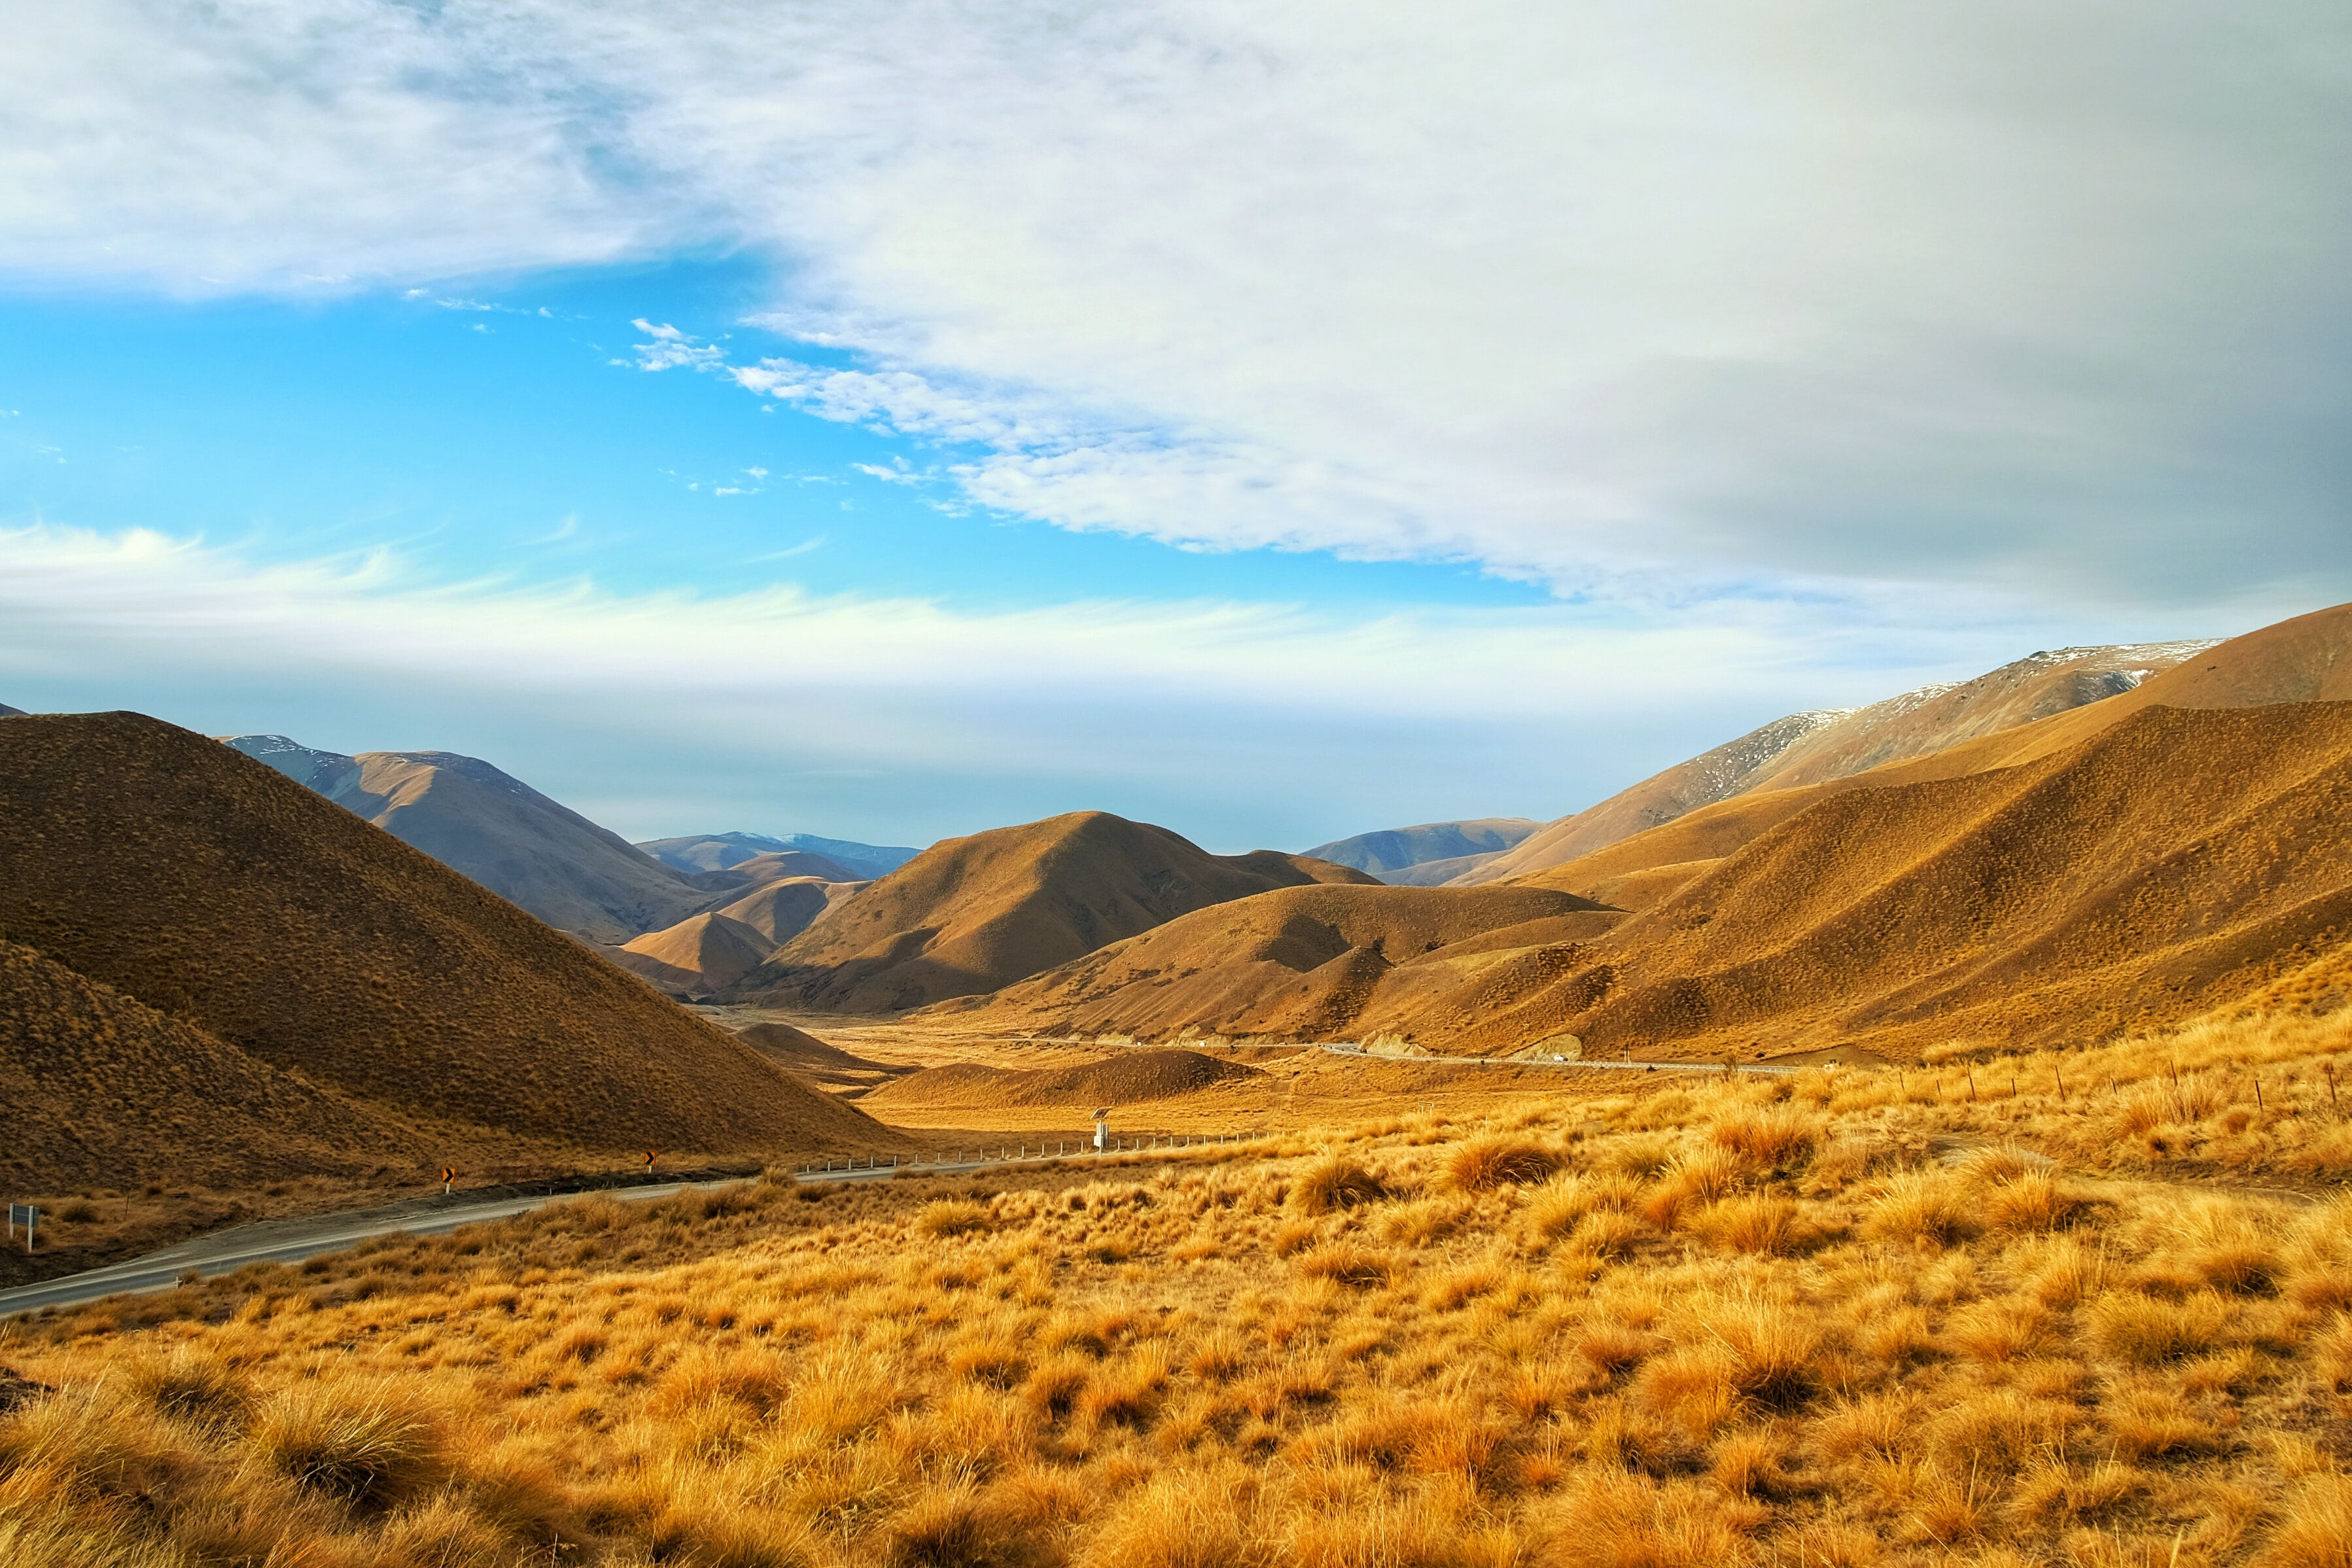 A road through undulating hills covered in golden glass